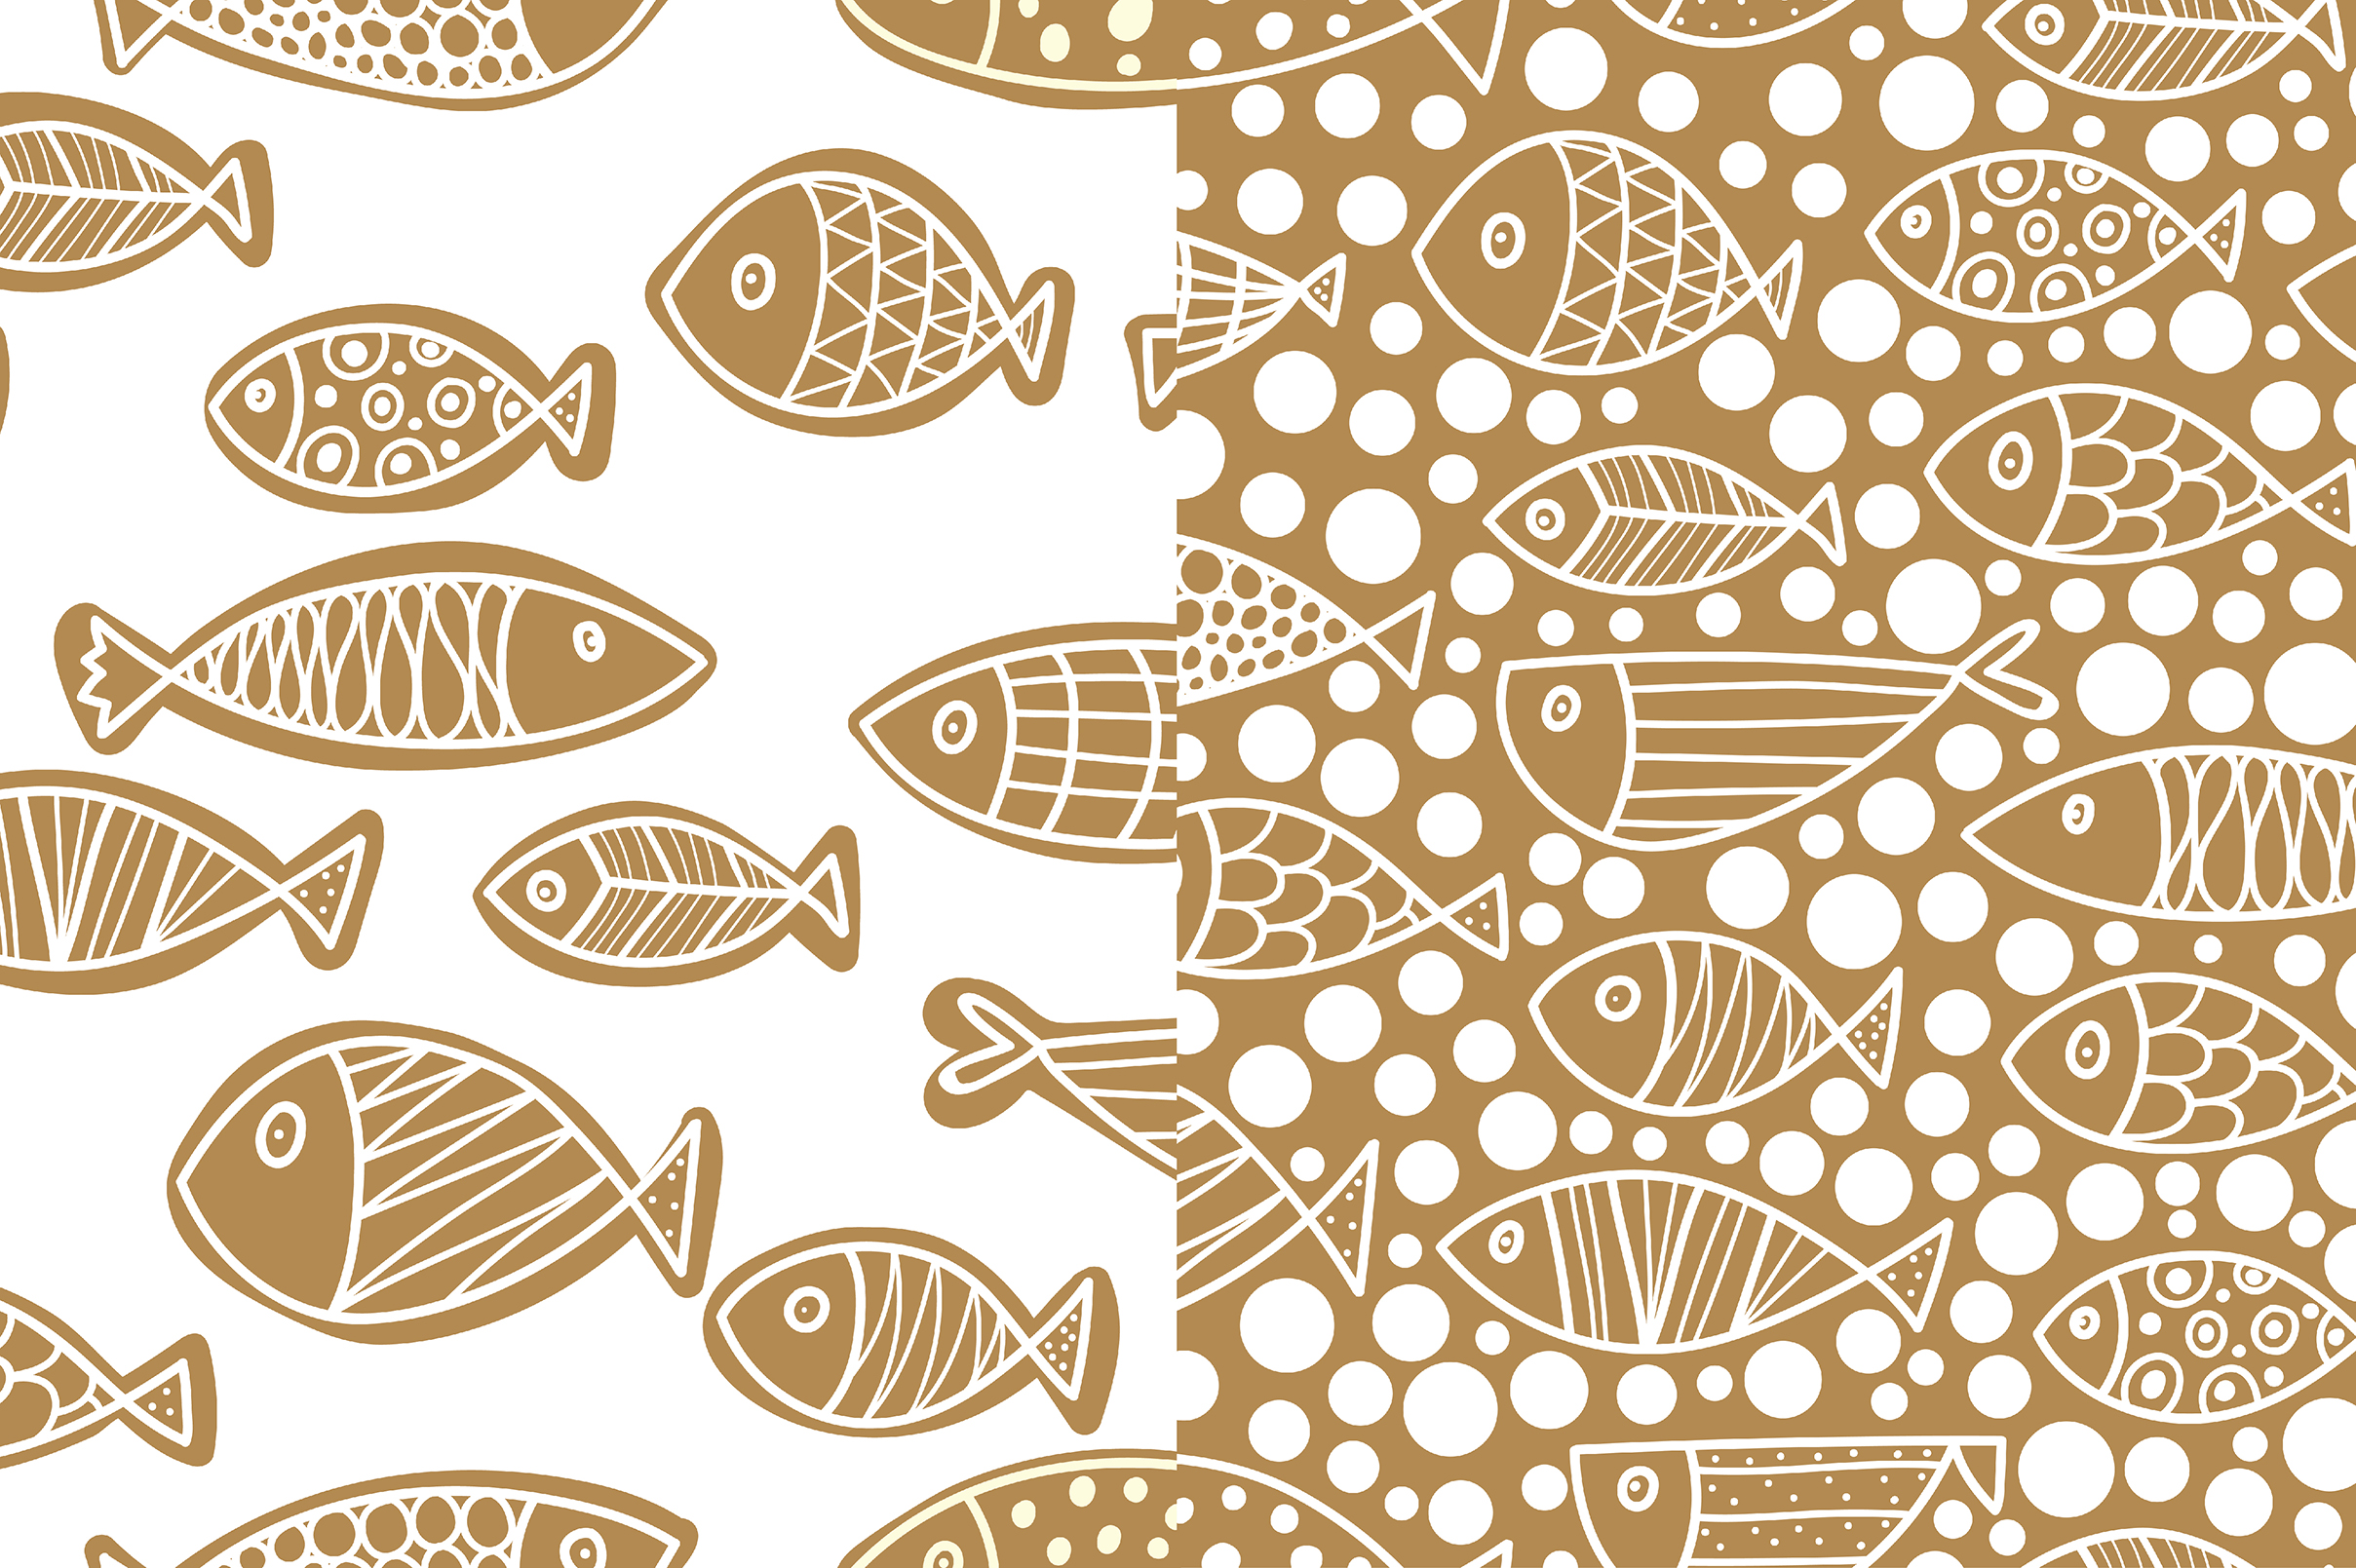 Gold and fish. example image 6